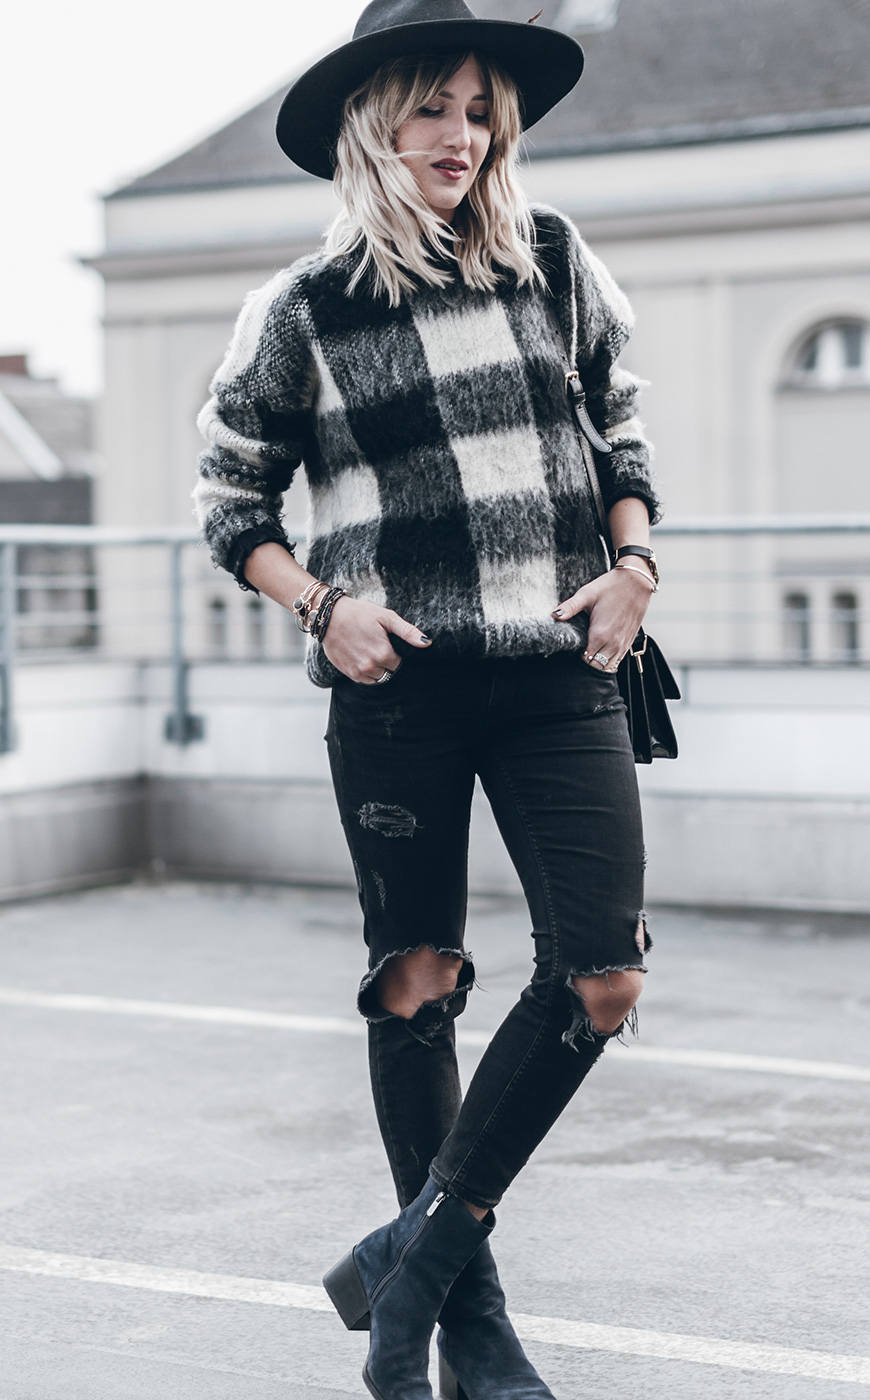 If you're looking for a slick and stylish way to wear the black and white trend, try copying Jacqueline Mikuta and opting for a monochrome check sweater and distressed black jeans! Sweater: Second Female, Jeans: Zara, Hat: Goorin Bros, Shoes: Circus by Sam Edelman, Bag: Ganni.